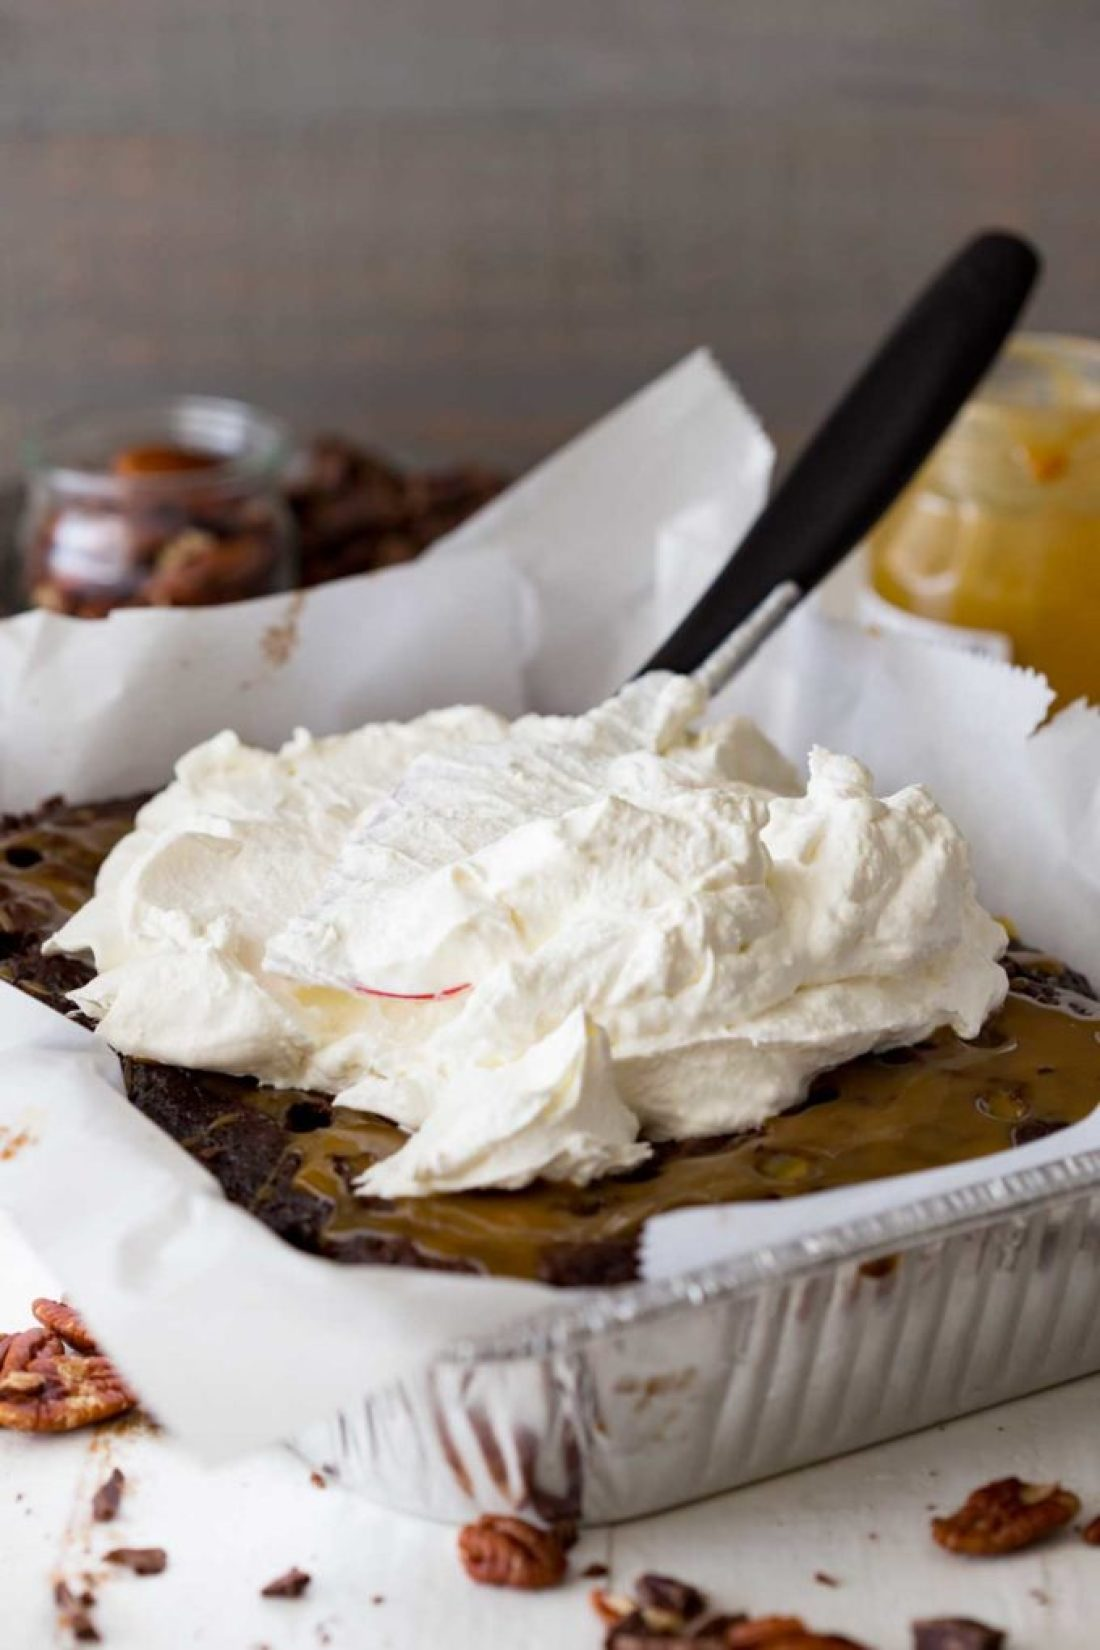 Spreading whipped cream over the easy turtle poke cake!